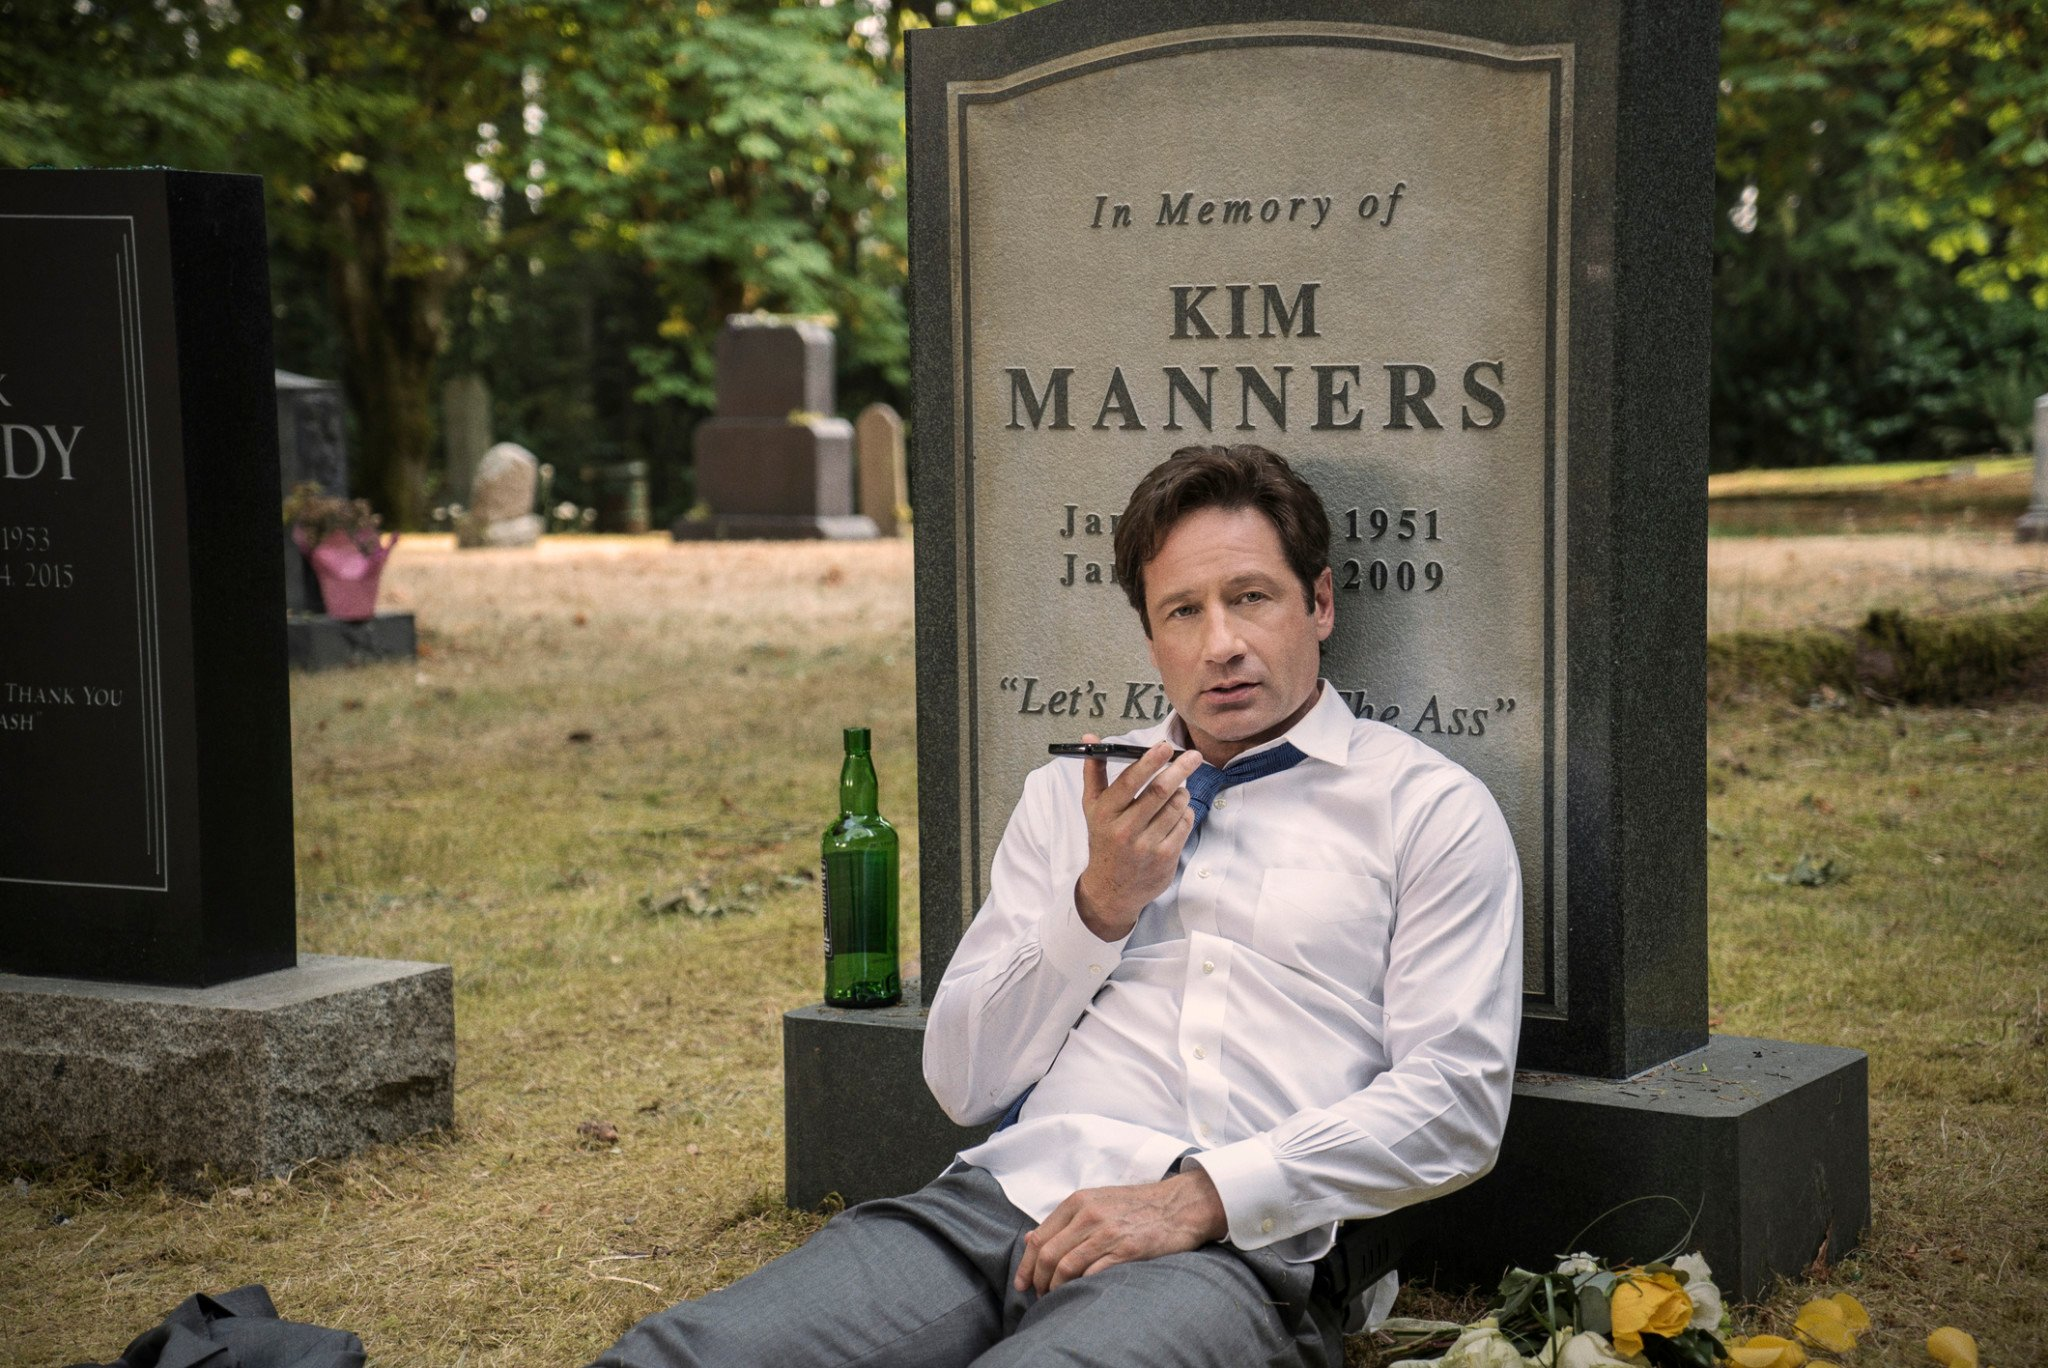 R.I.P. Kim Manners